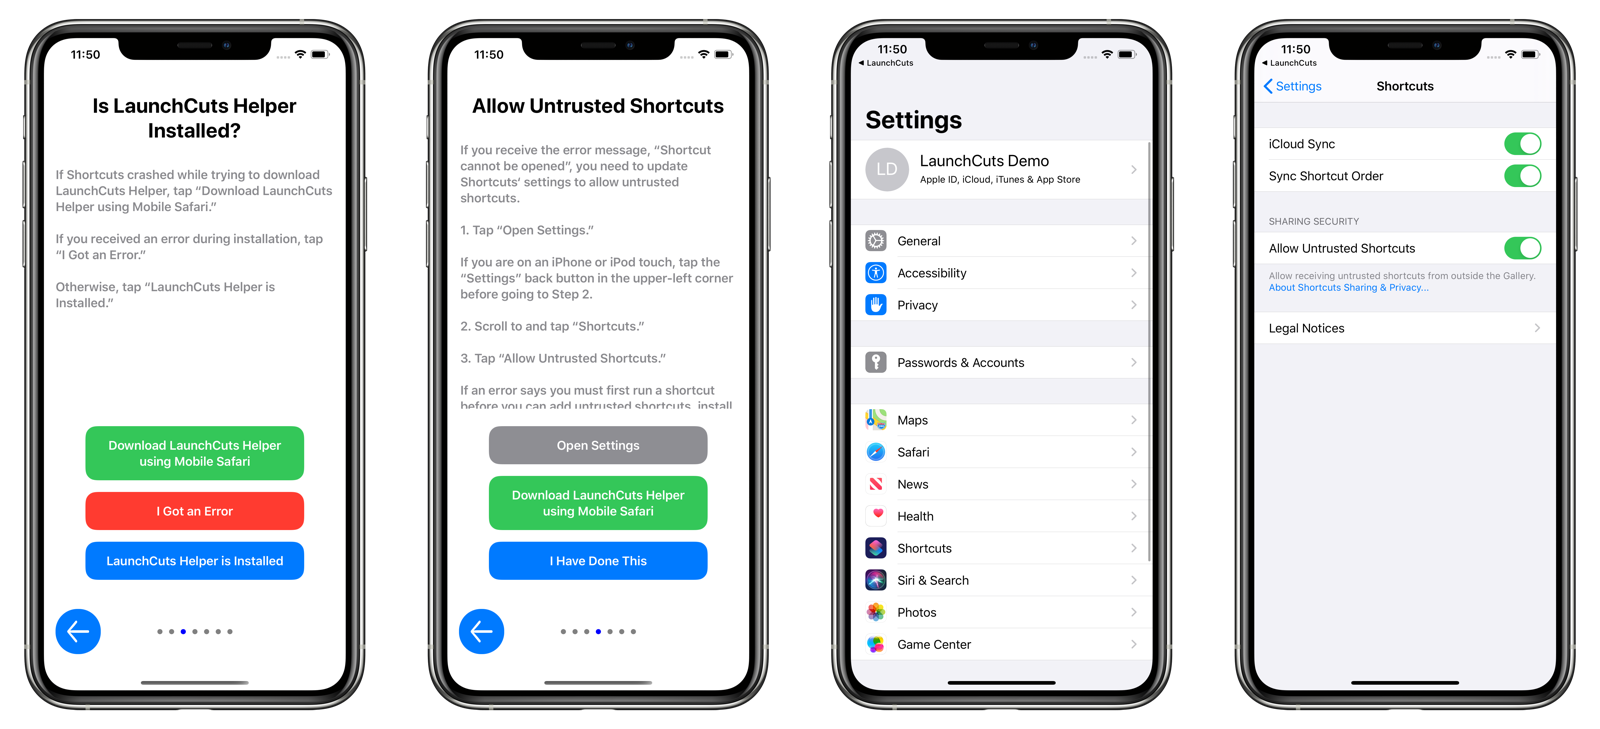 Allowing Untrusted Shortcuts